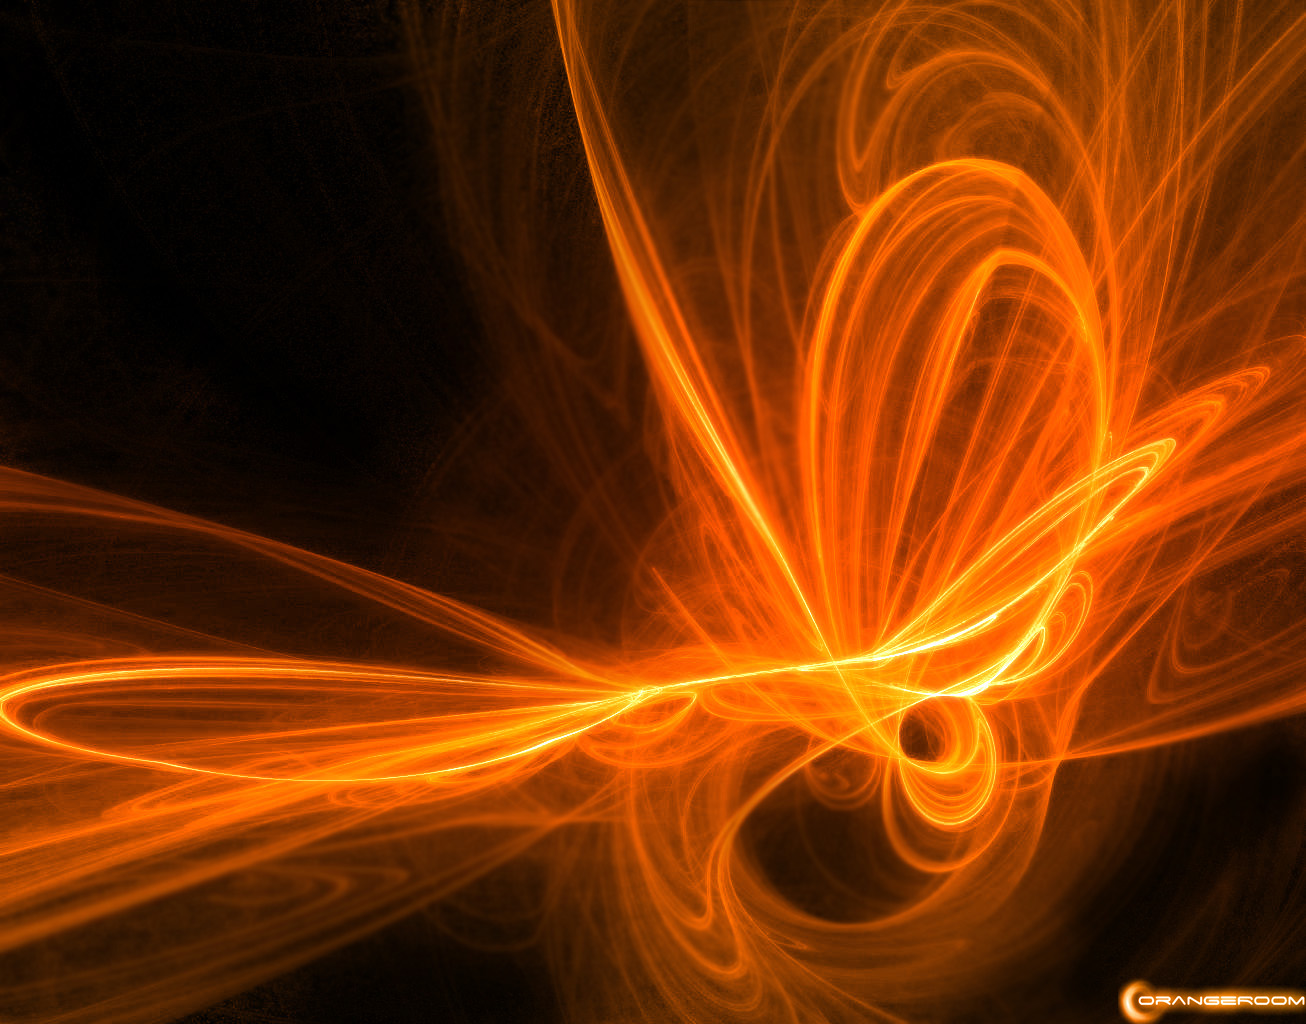 Wallpaper Orange Design : Orange images wallpaper hd and background